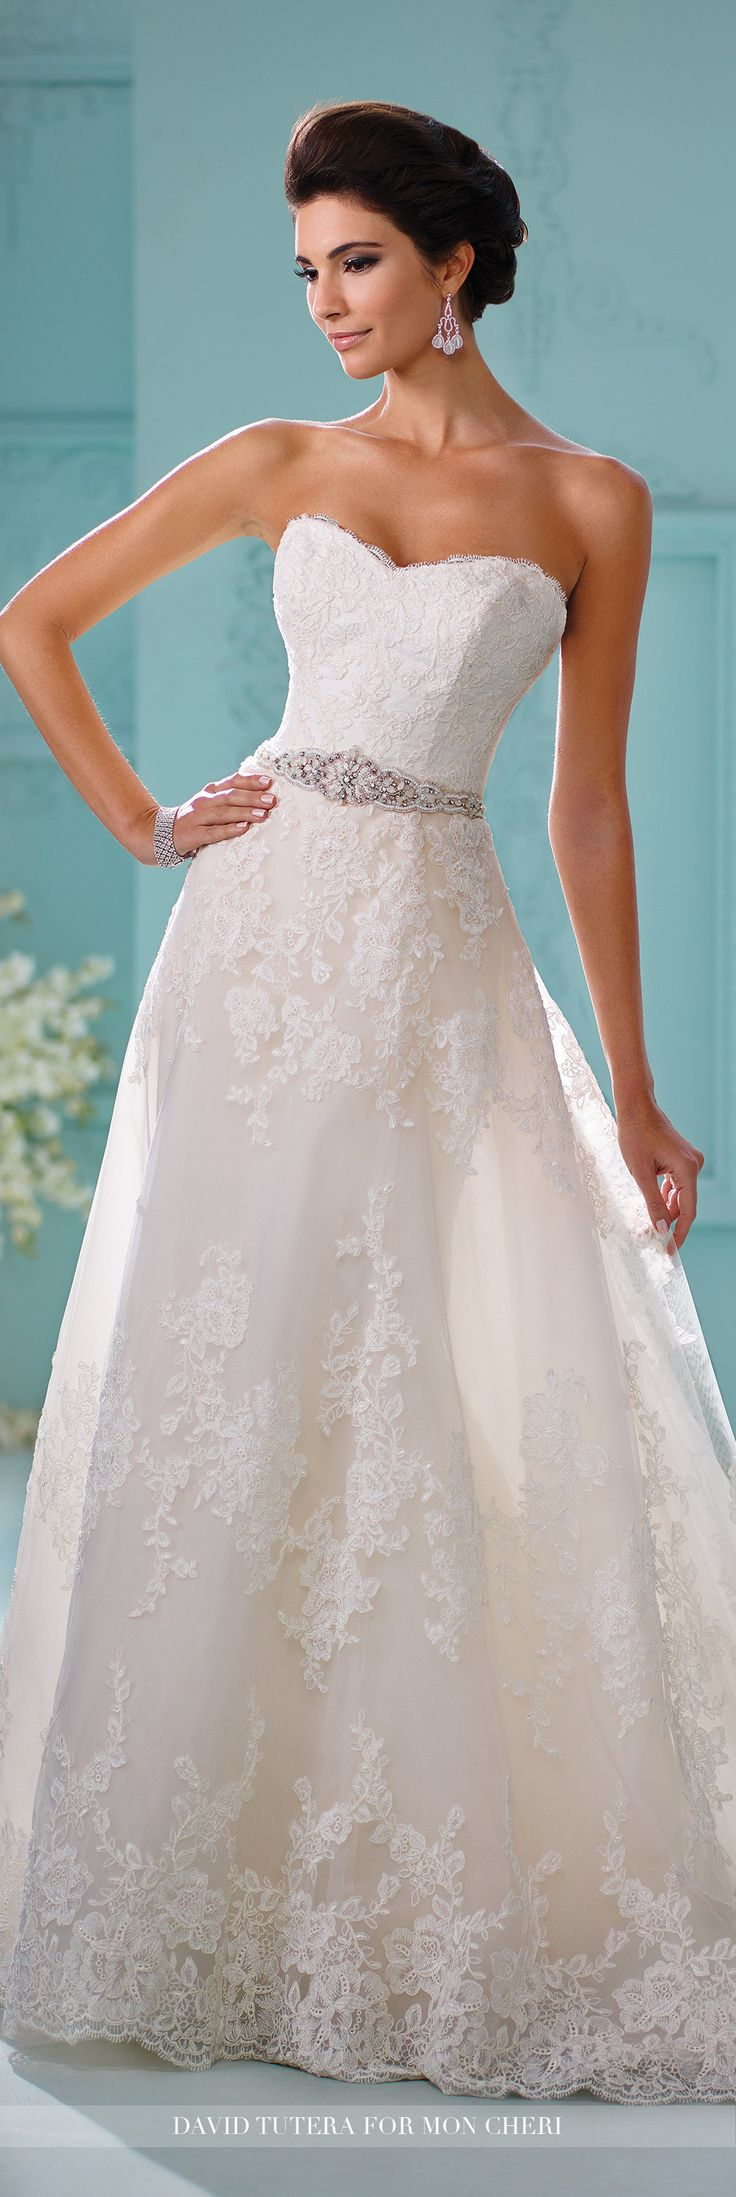 Best David Tutera Gowns Images On Pinterest Wedding Dressses